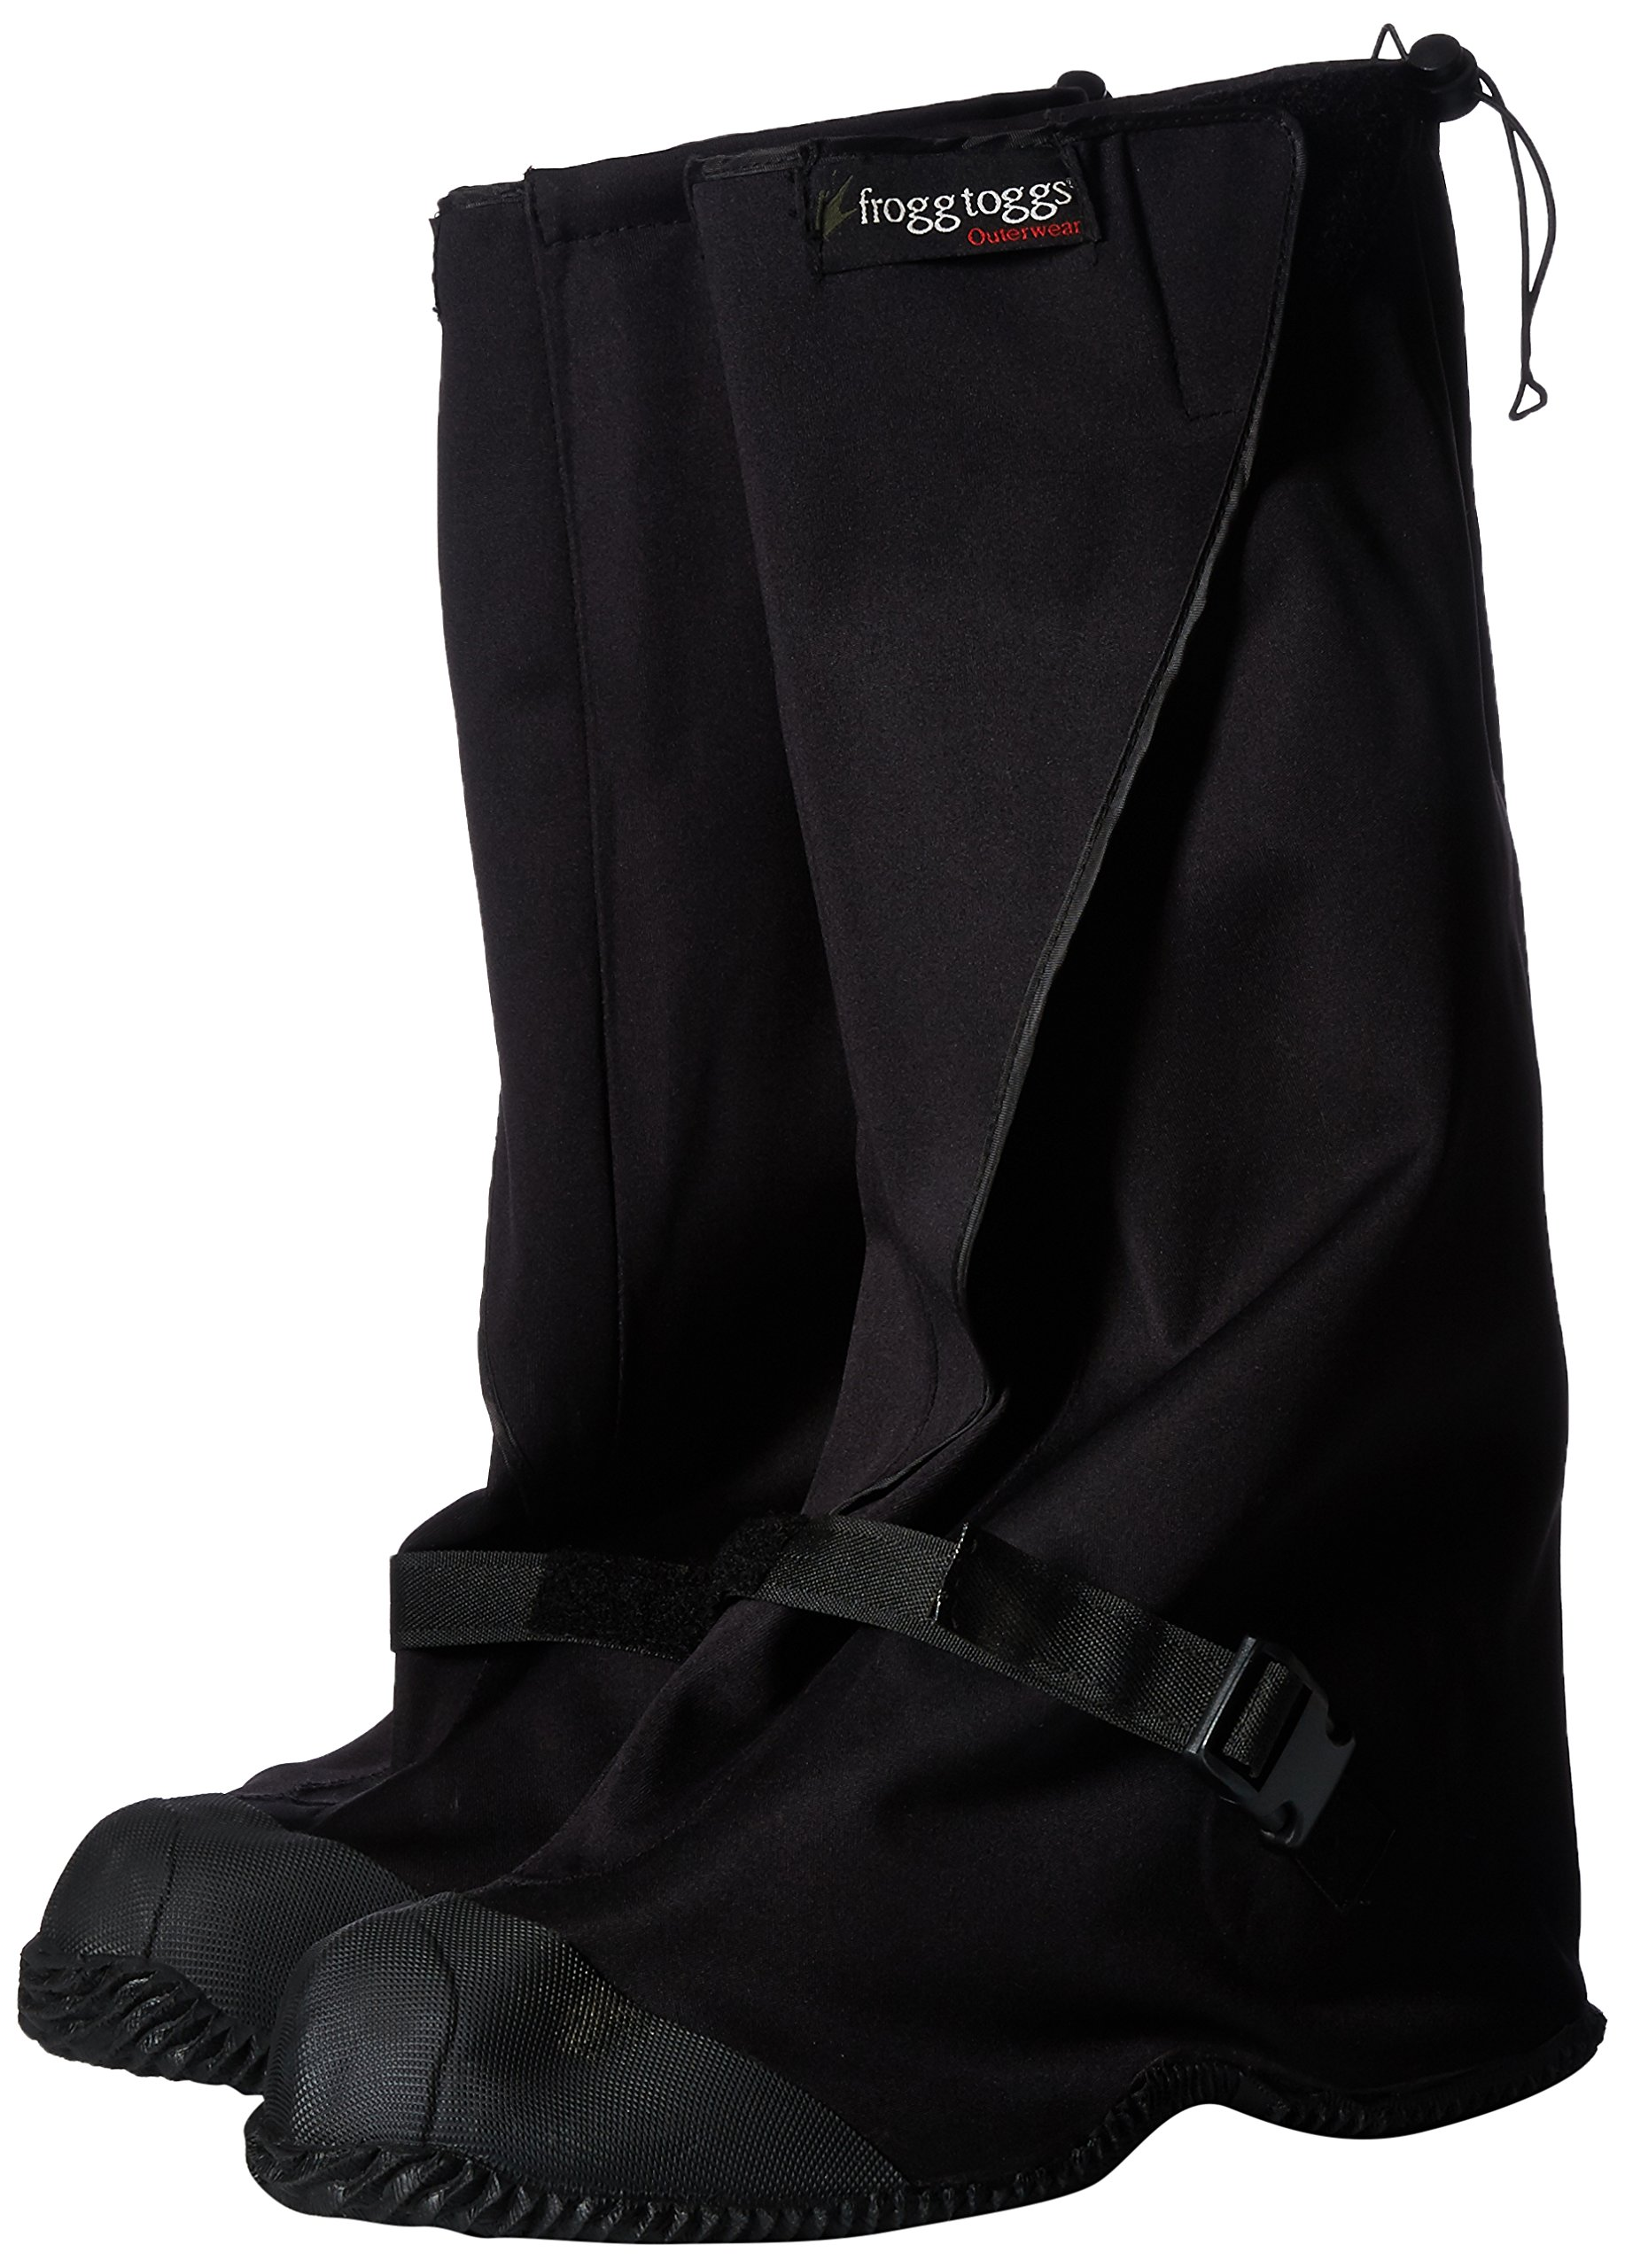 Frogg Toggs Leggs Black Waterproof Overshoe and Gaiters, L/XL (11-13)